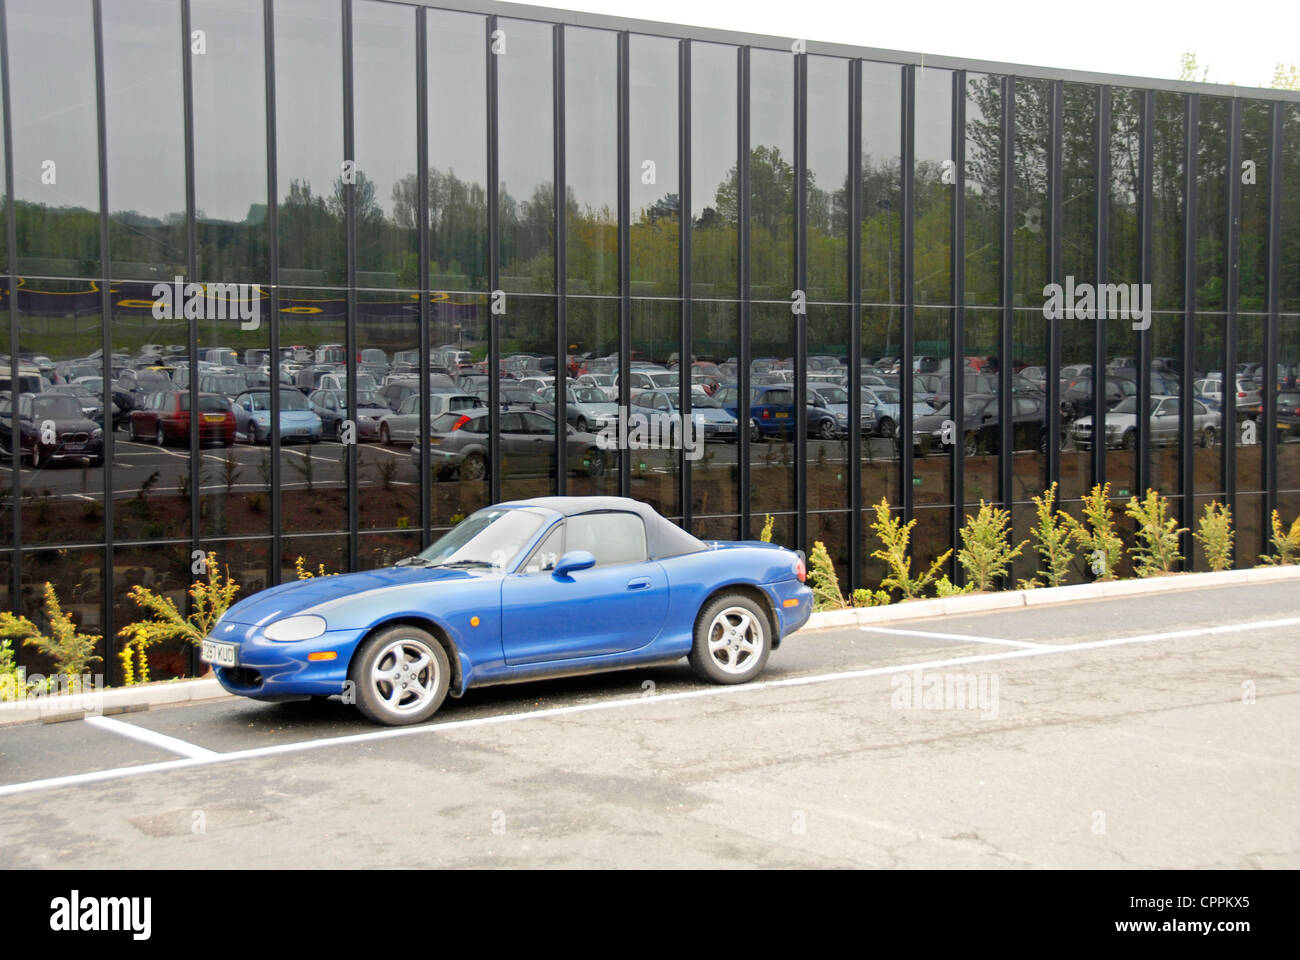 Cars in car park reflected in large glass window - Stock Image